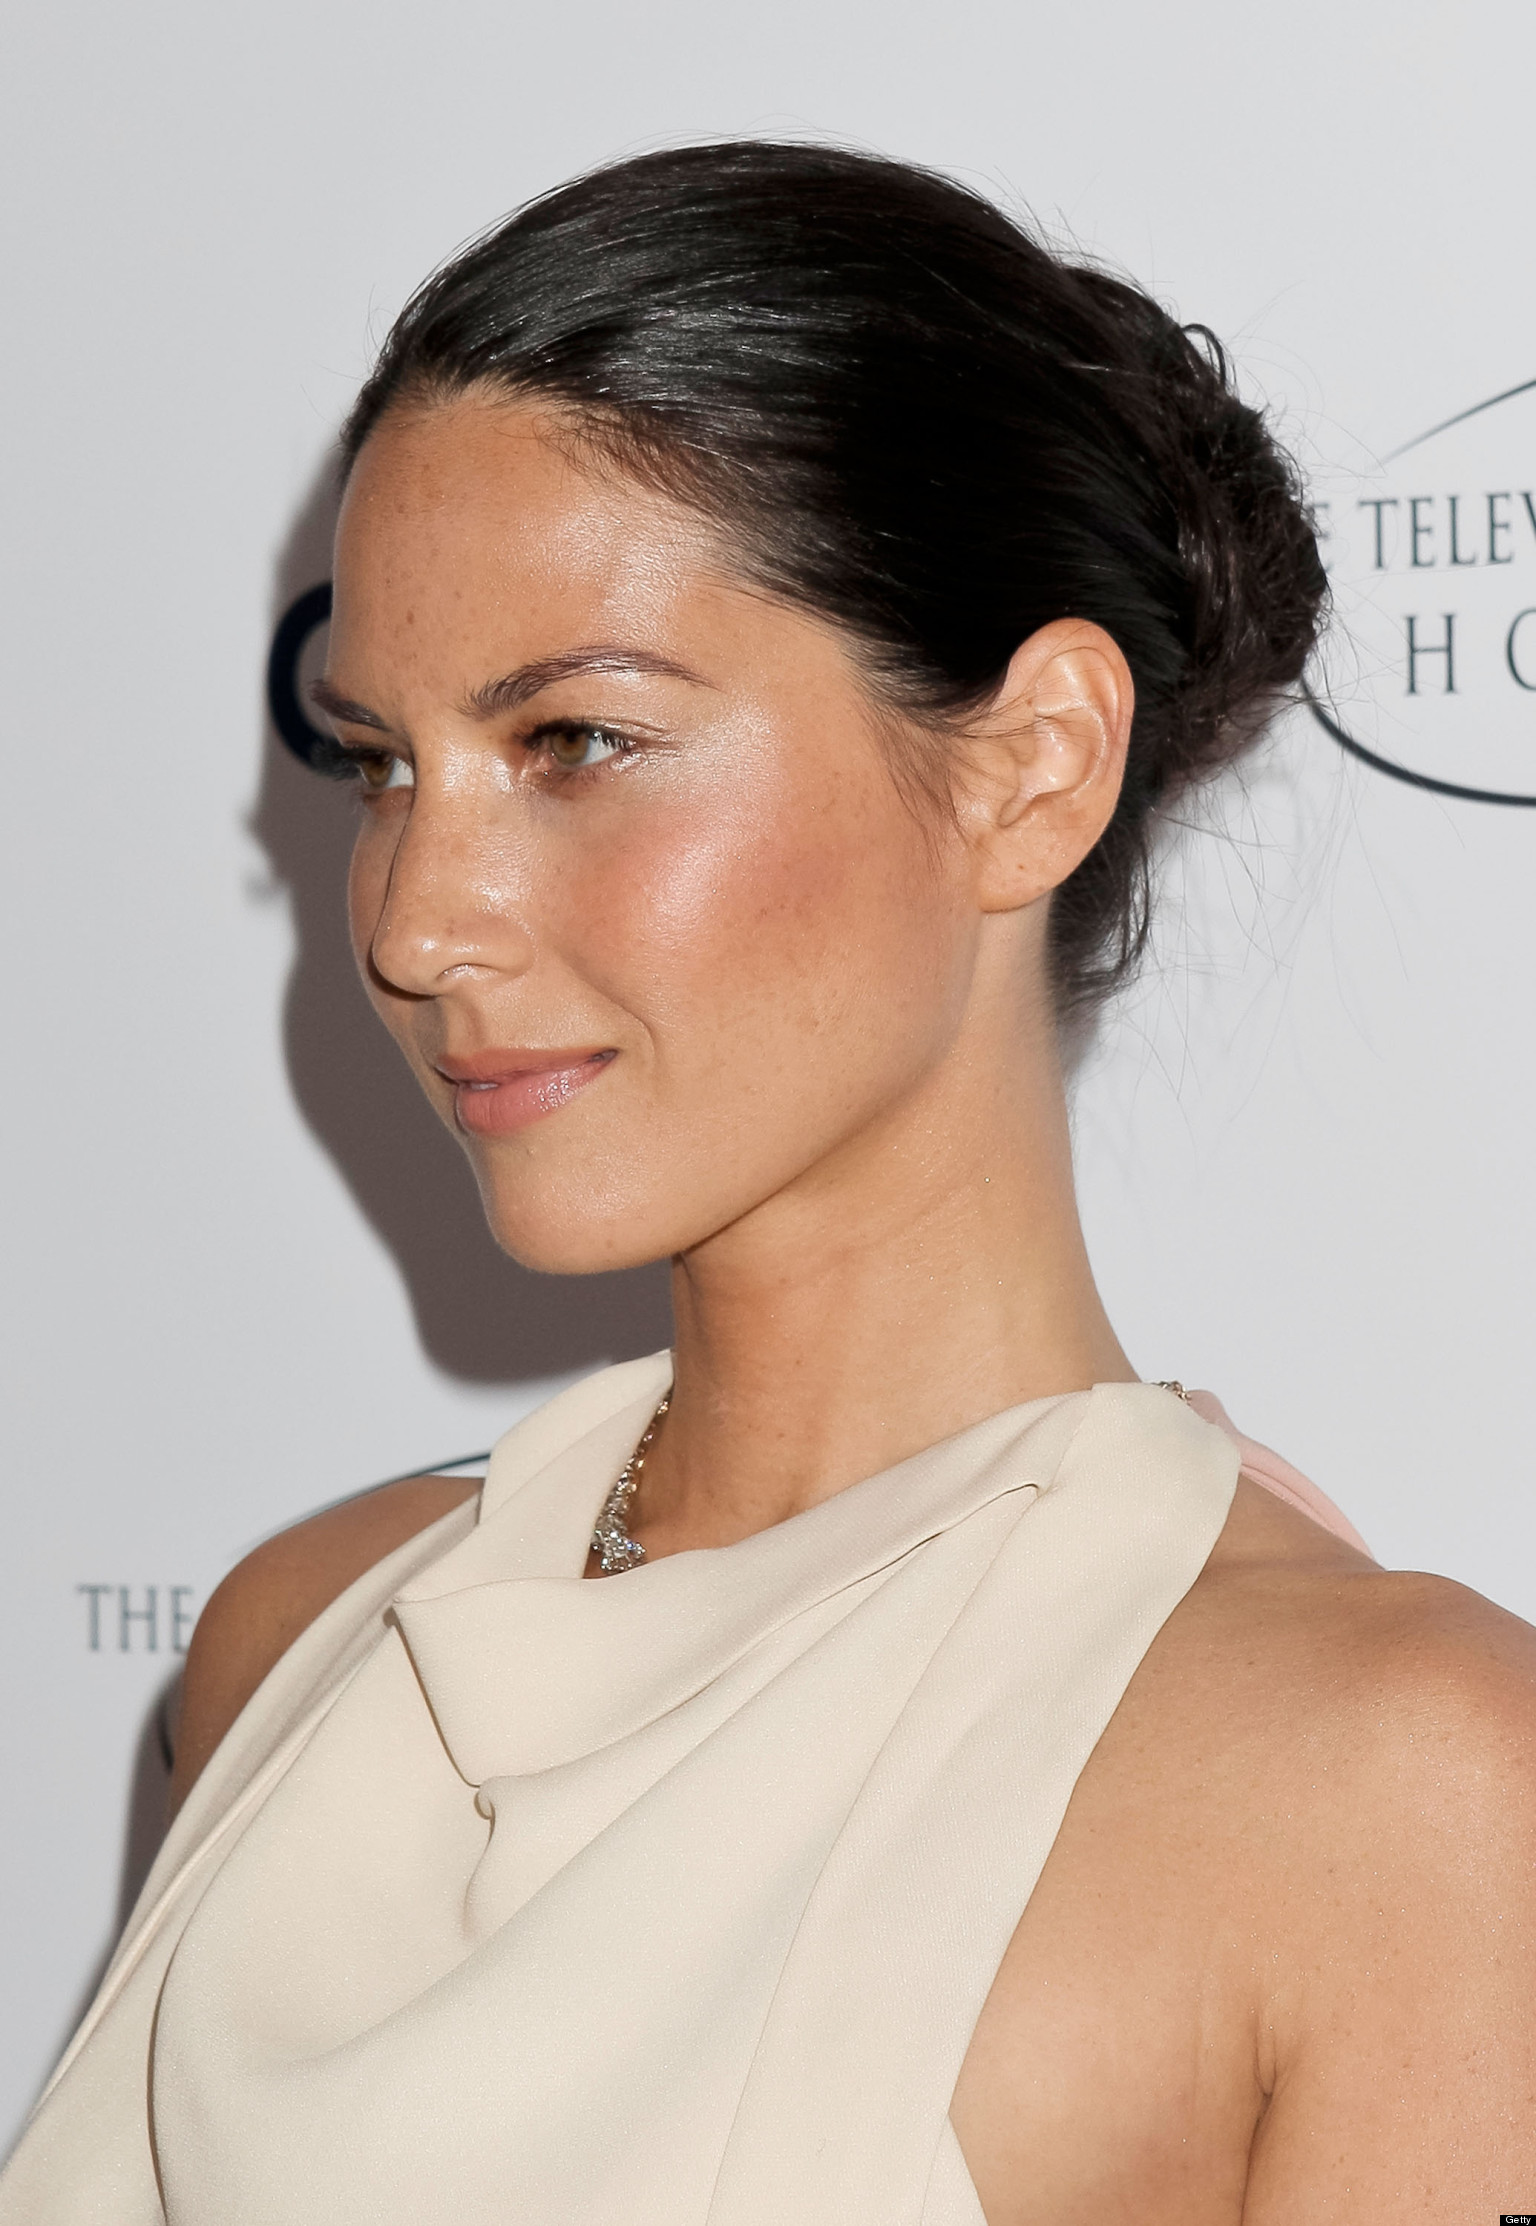 Olivia Munn Keeps A Stun Gun By Her Bed Because Of Course